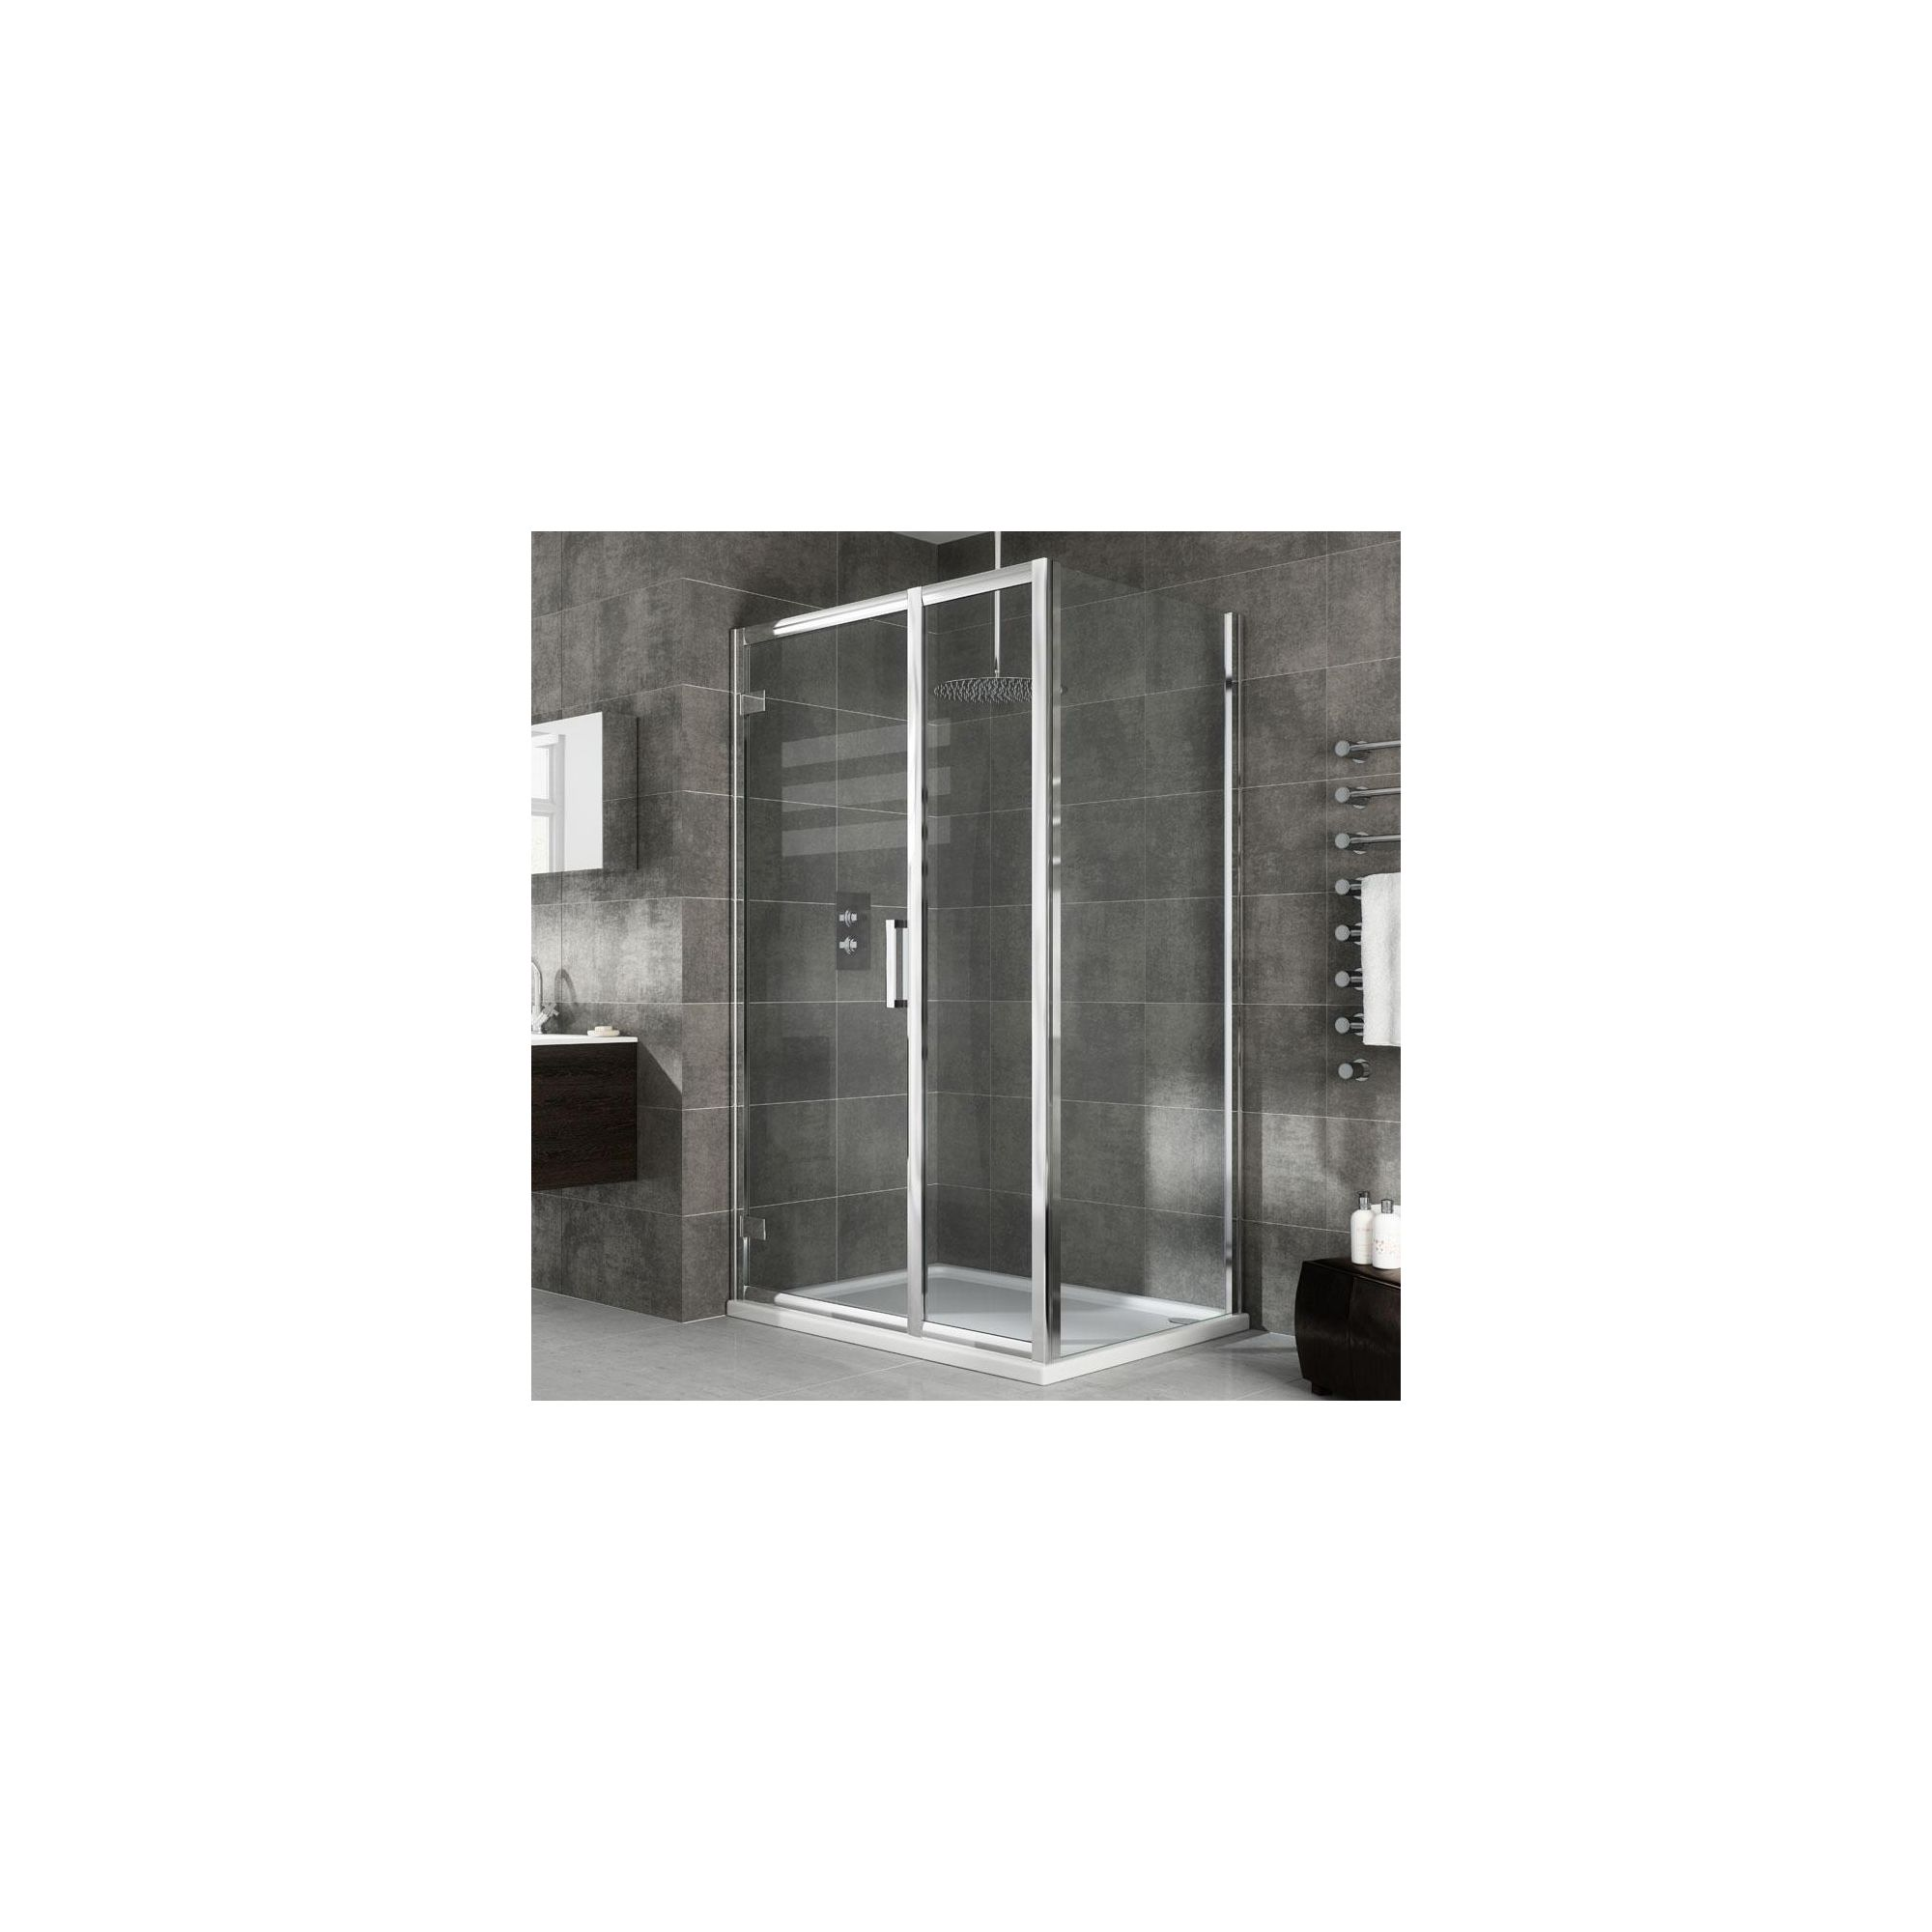 Elemis Eternity Inline Hinged Door Shower Enclosure, 1400mm x 900mm, 8mm Glass, Low Profile Tray at Tesco Direct